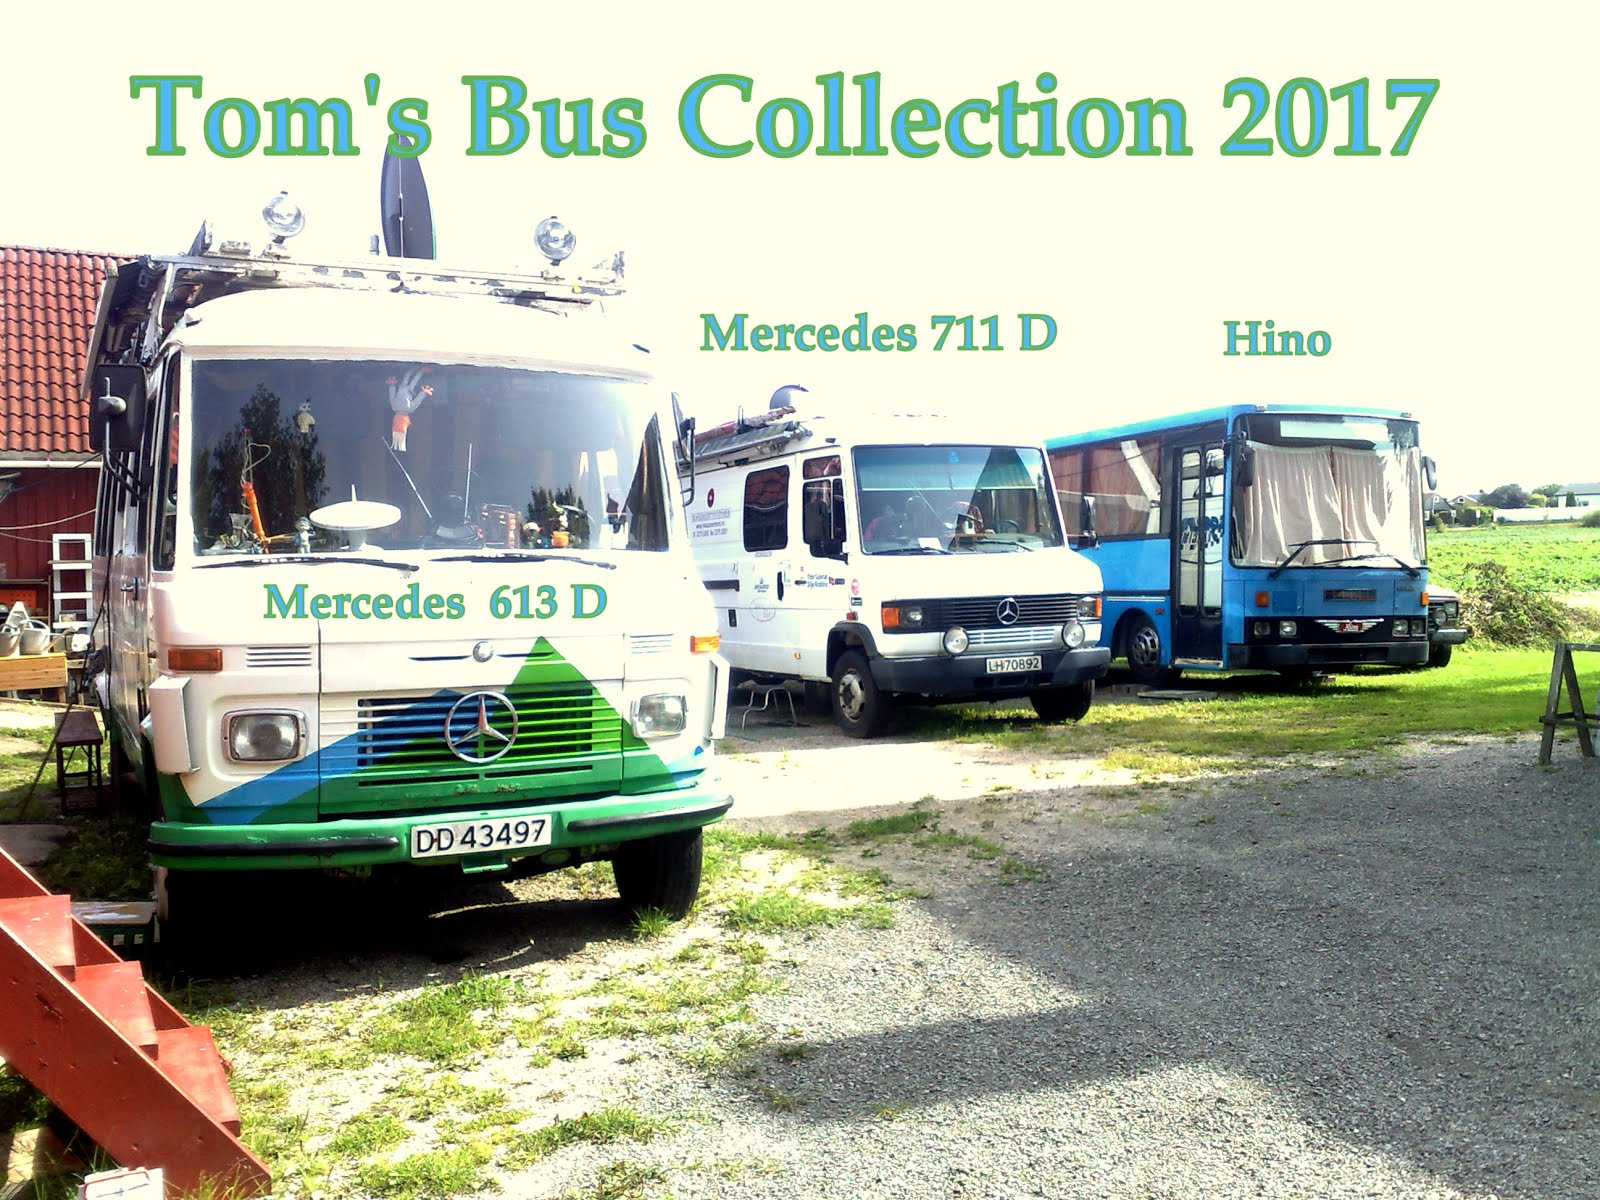 Tom's Bus Collection